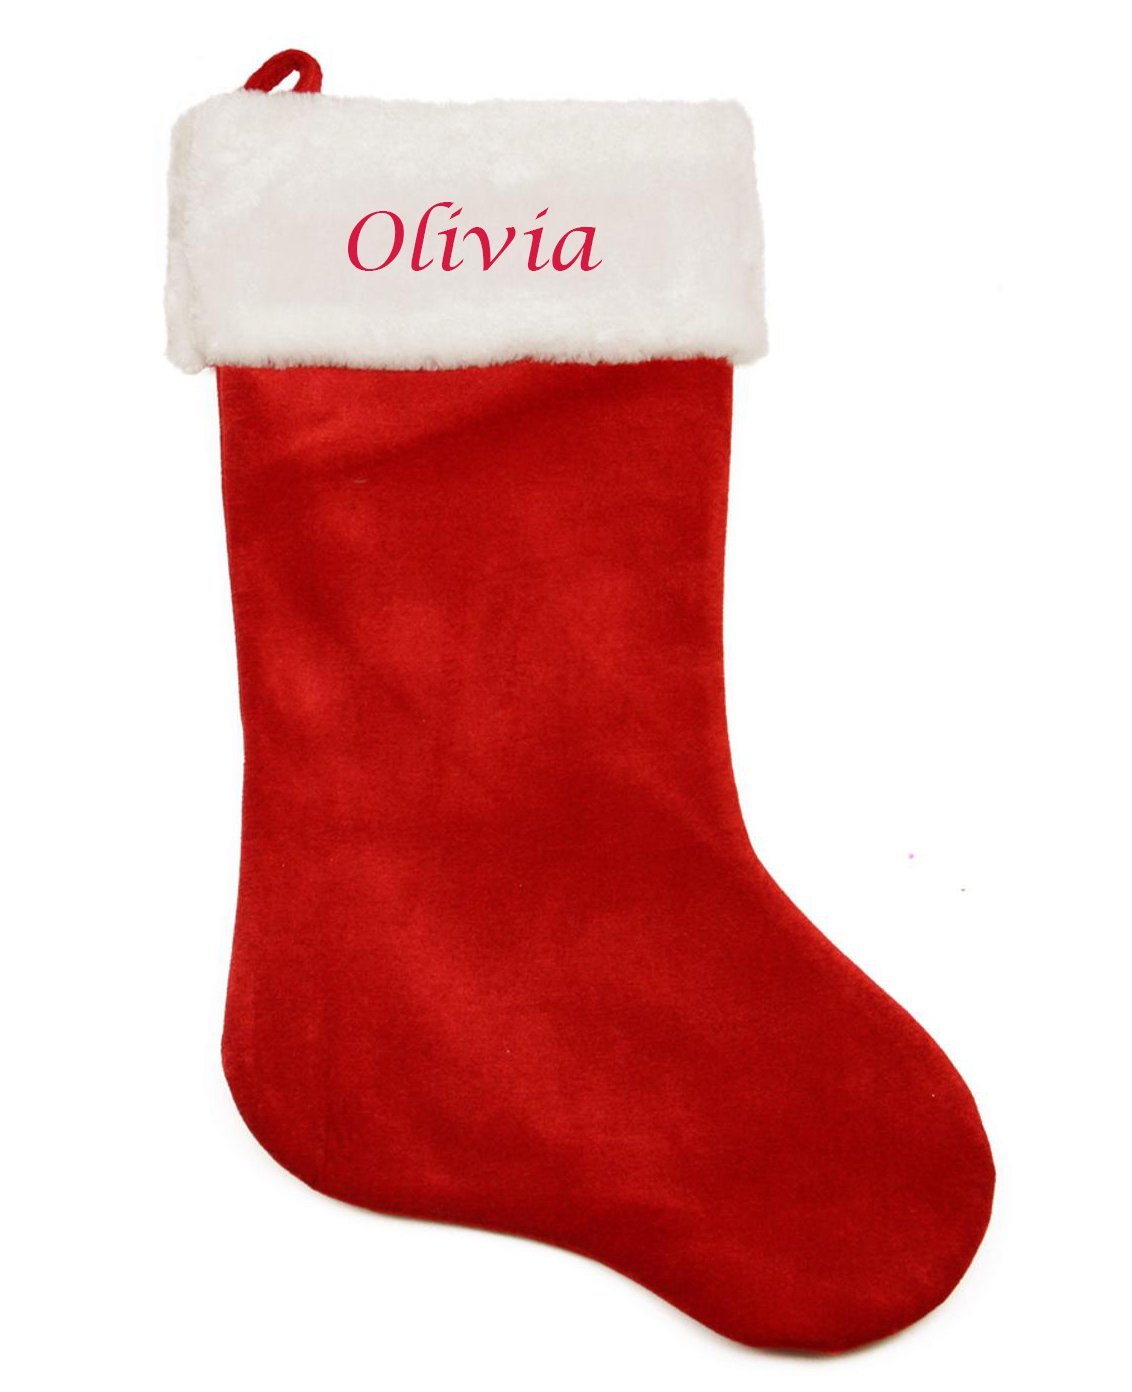 Personalised Embroidered Red Plush Christmas Stocking with name Super Jumbo 57x30cm Hoolaroo TN9556